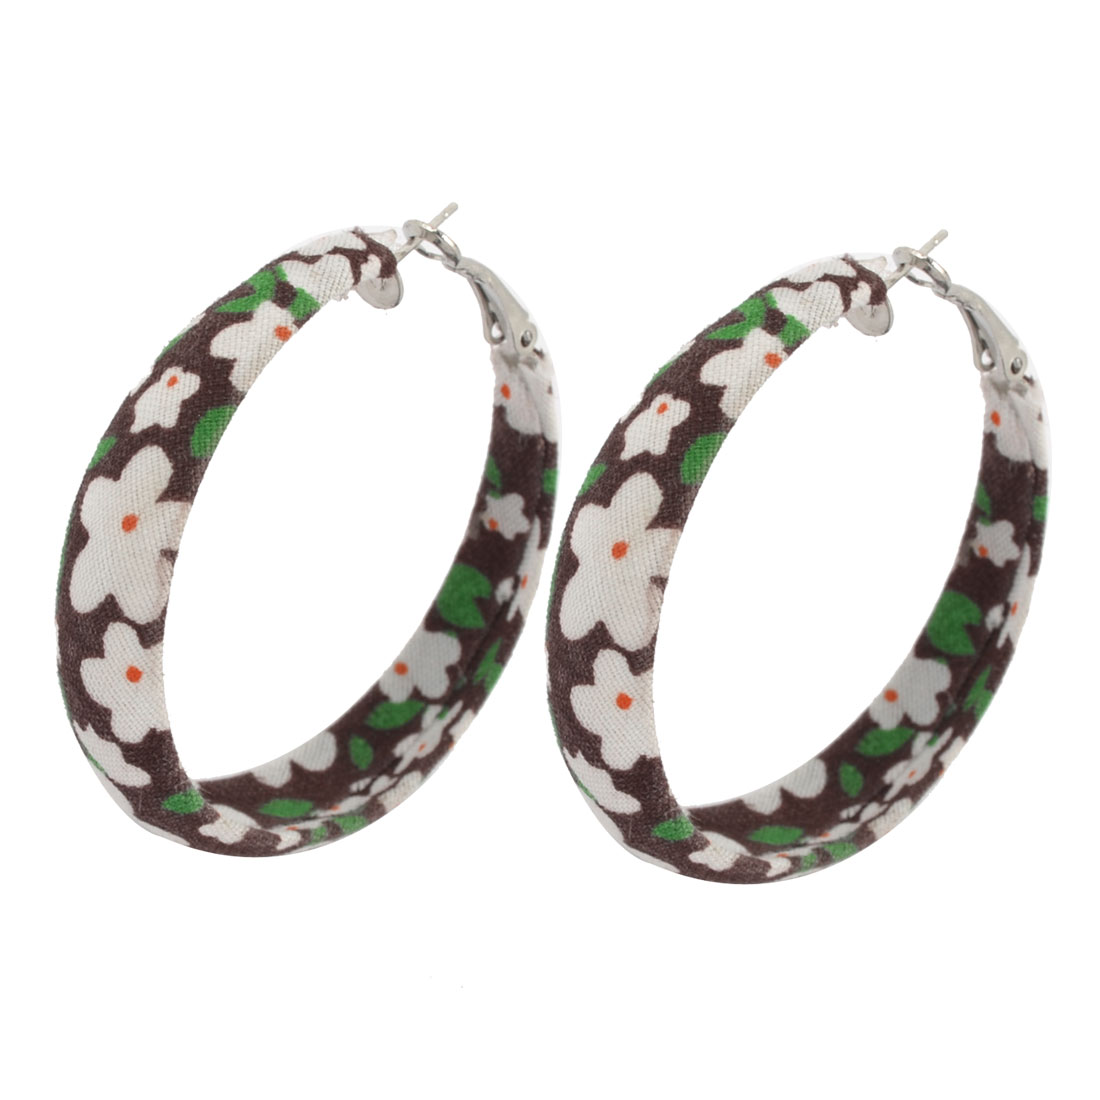 Pair Green White Flower Pattern Brown Fabric Covered Pierced Ear Hoop Earrings for Women